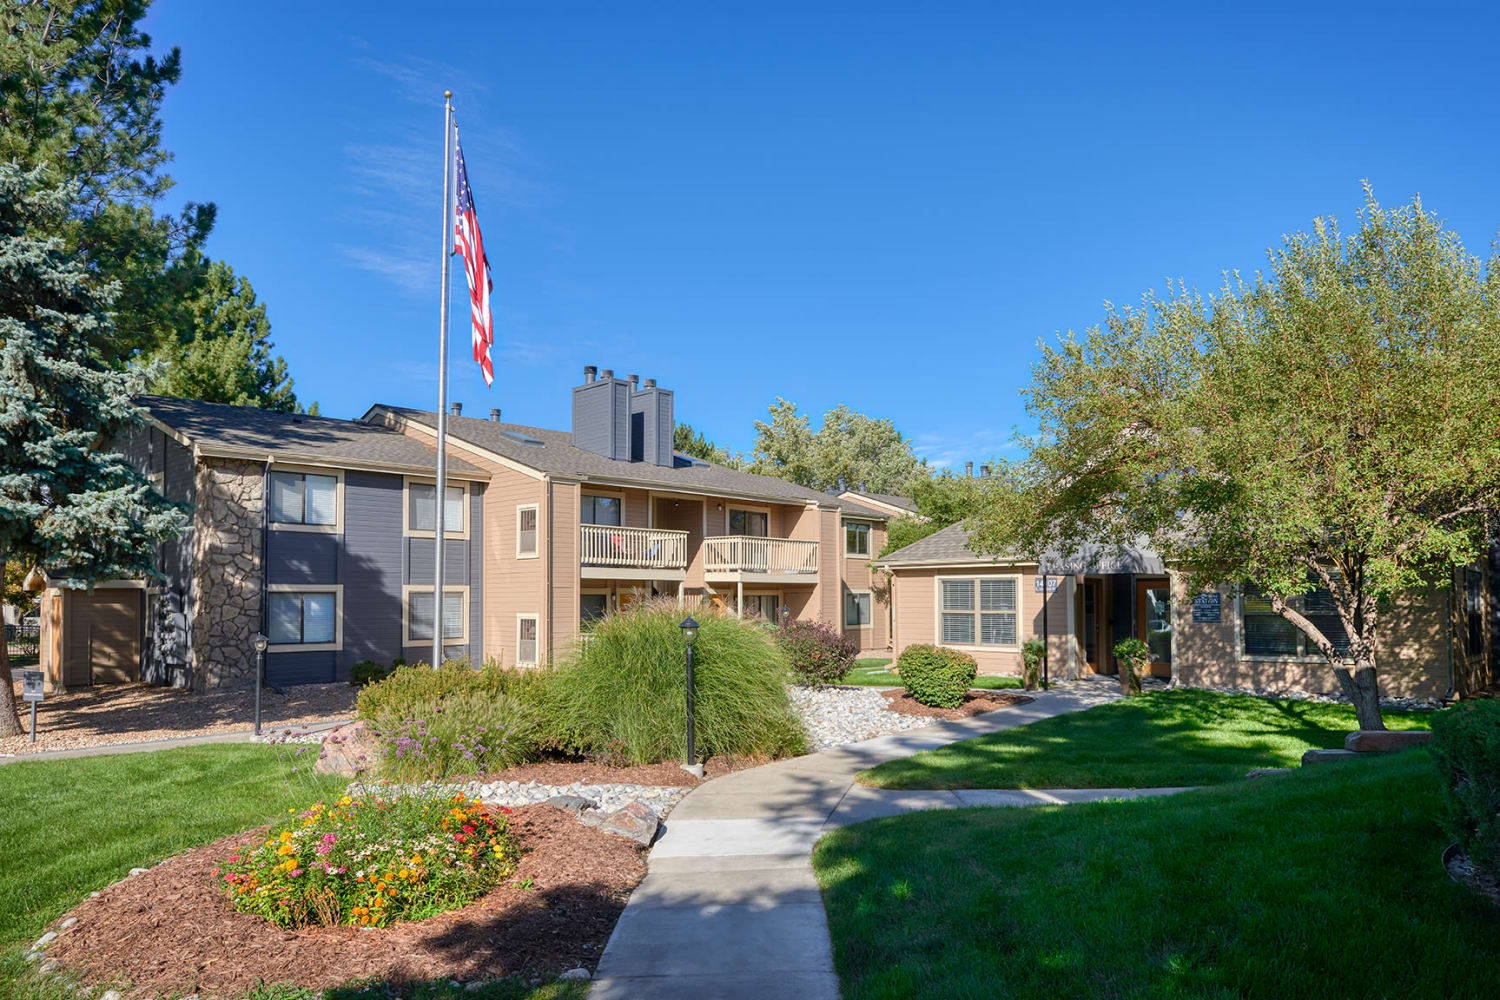 Apartment home entrance at City Center Station Apartments in Aurora, Colorado